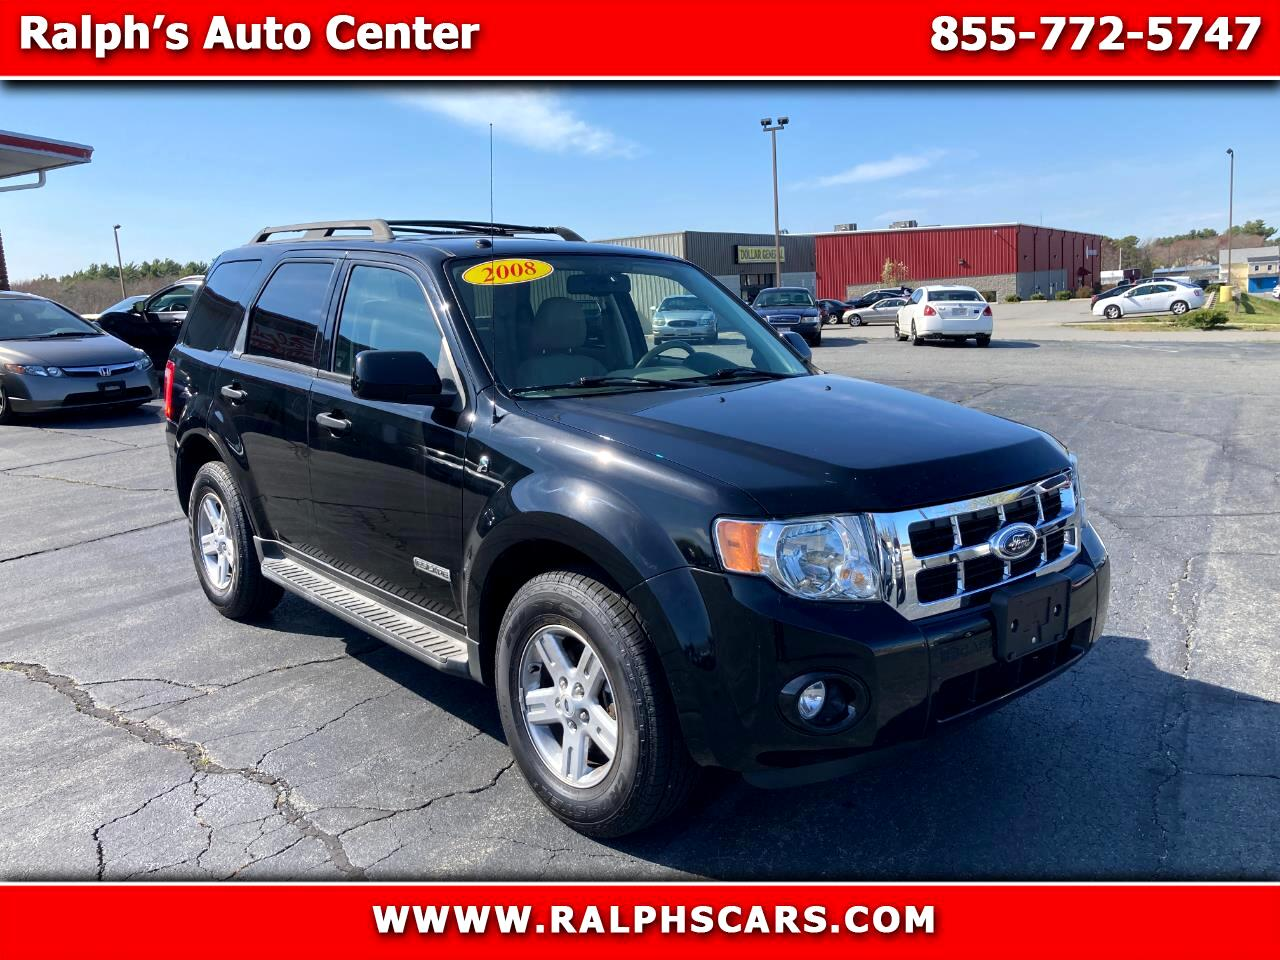 Ford Escape 4dr 2.3L Hybrid 4WD 2008